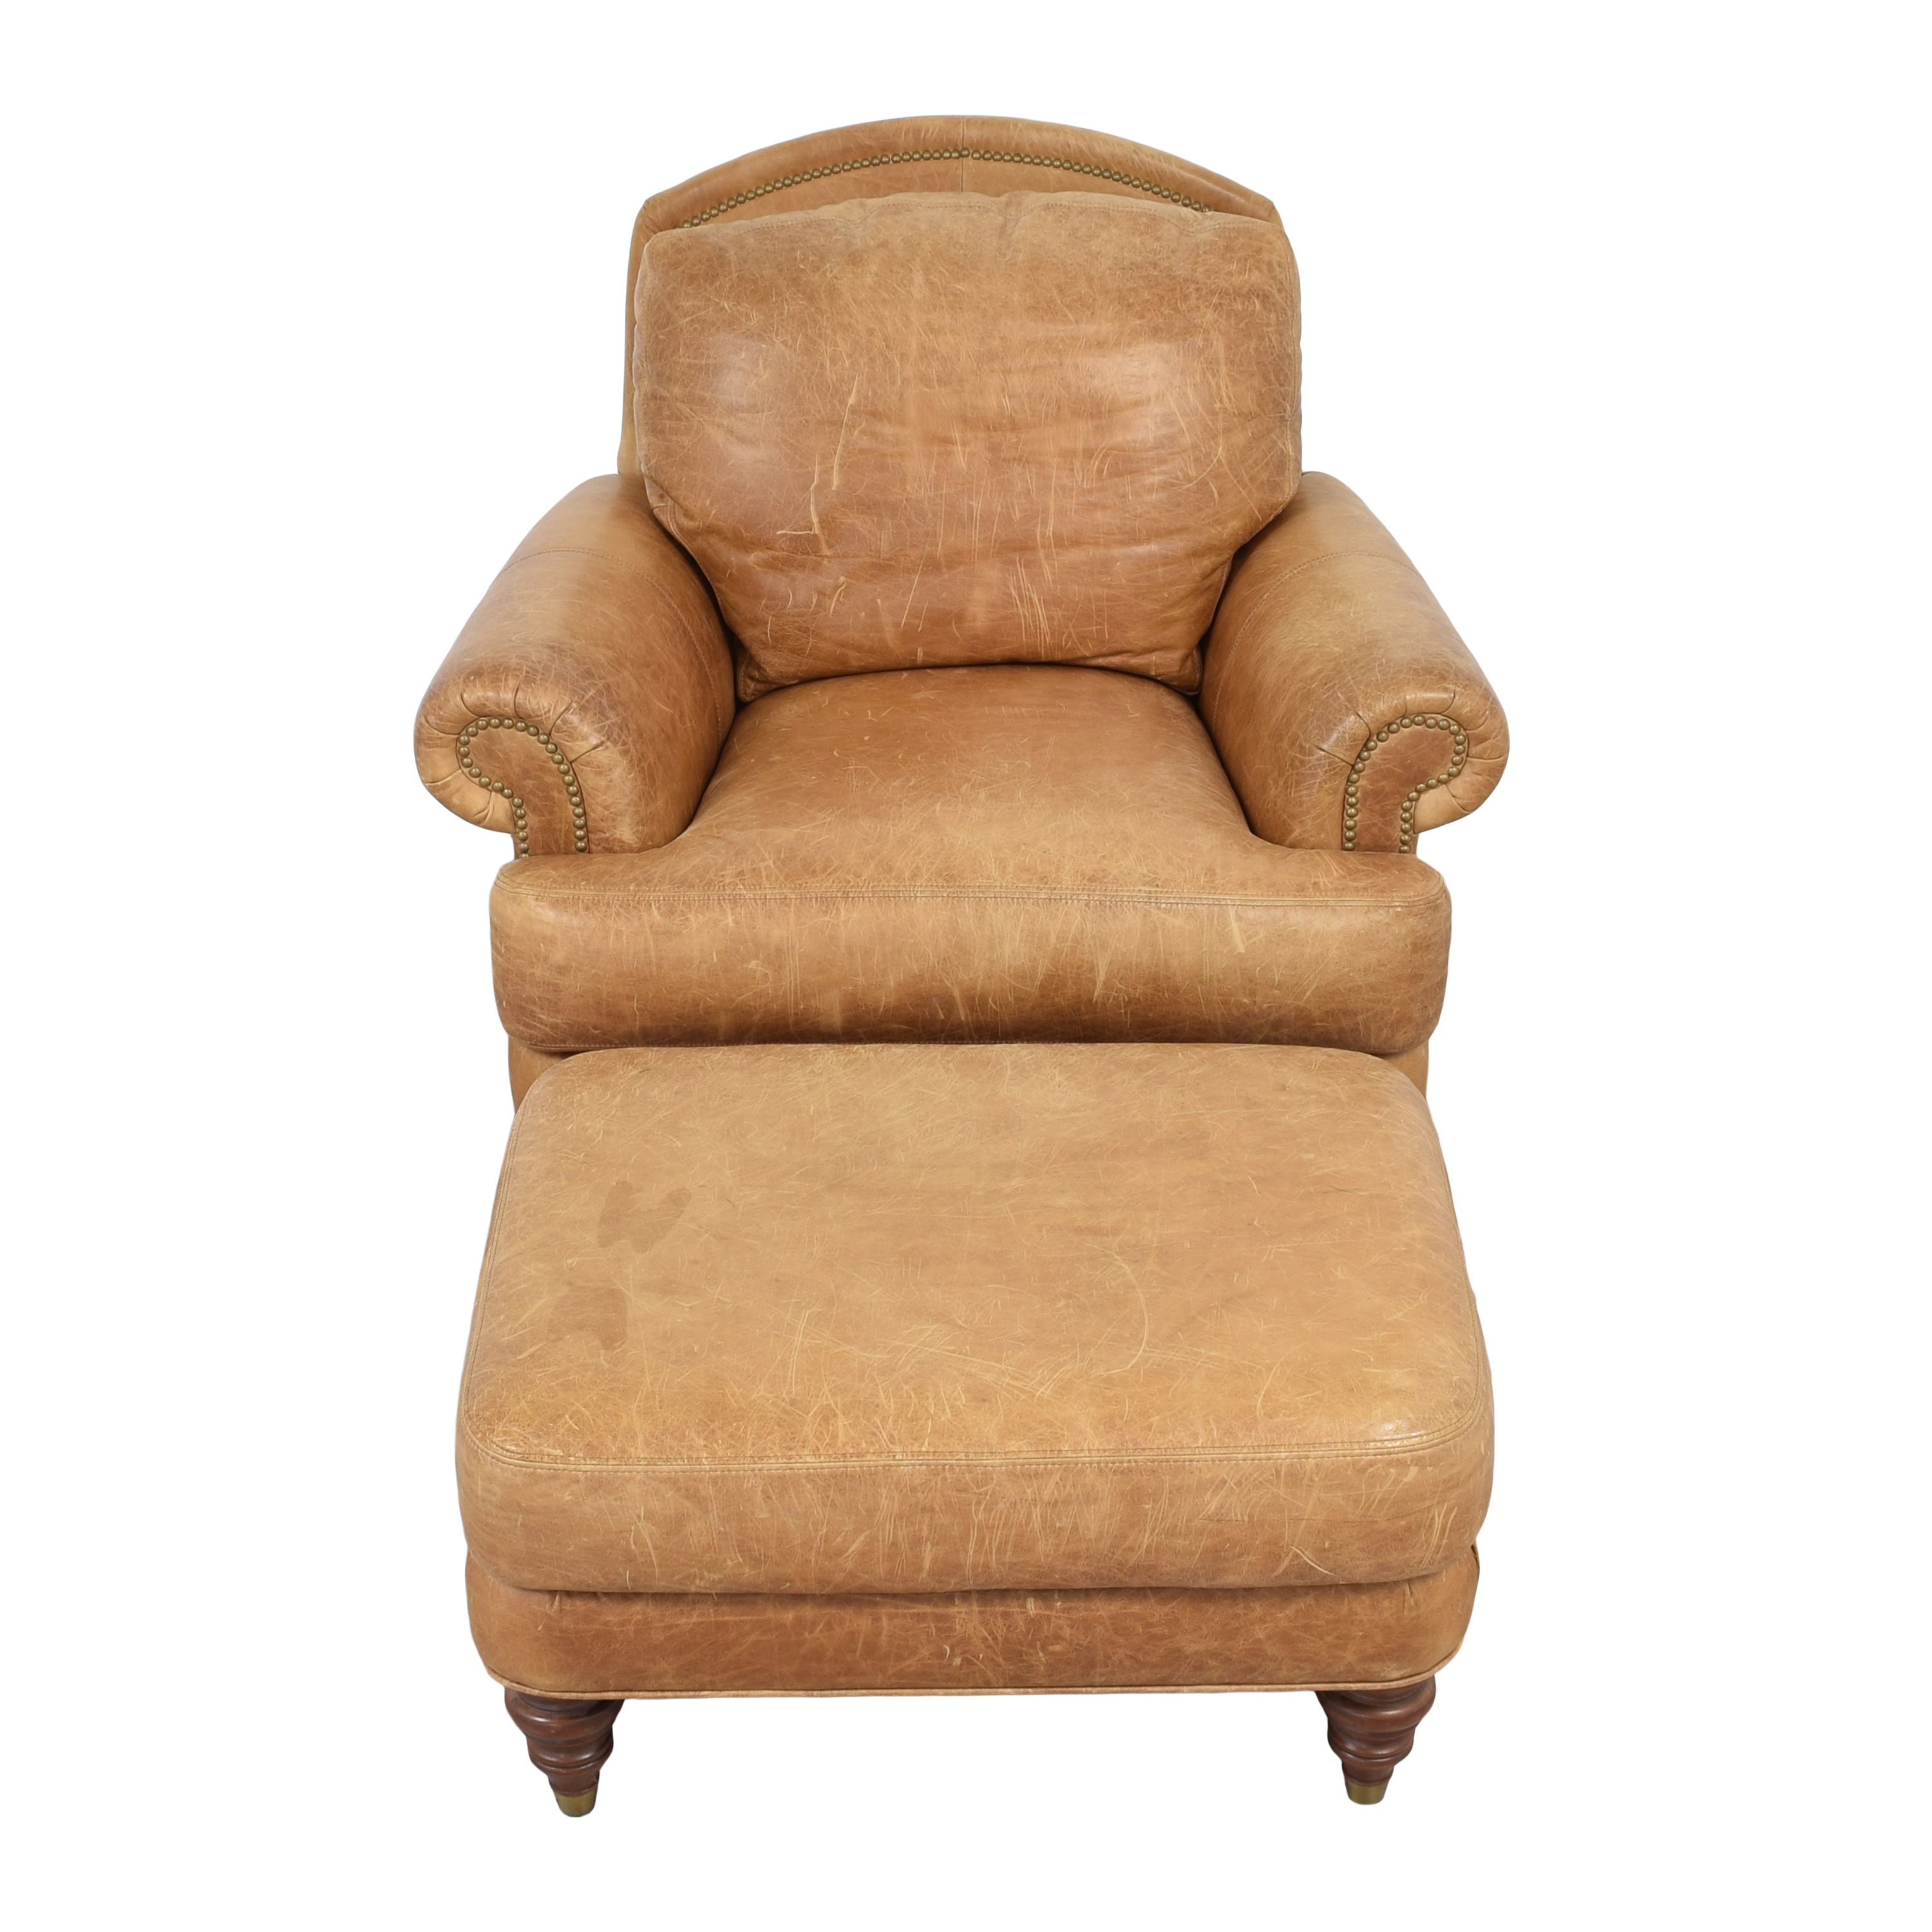 Ethan Allen Ethan Allen Lounge Chair and Ottoman Chairs